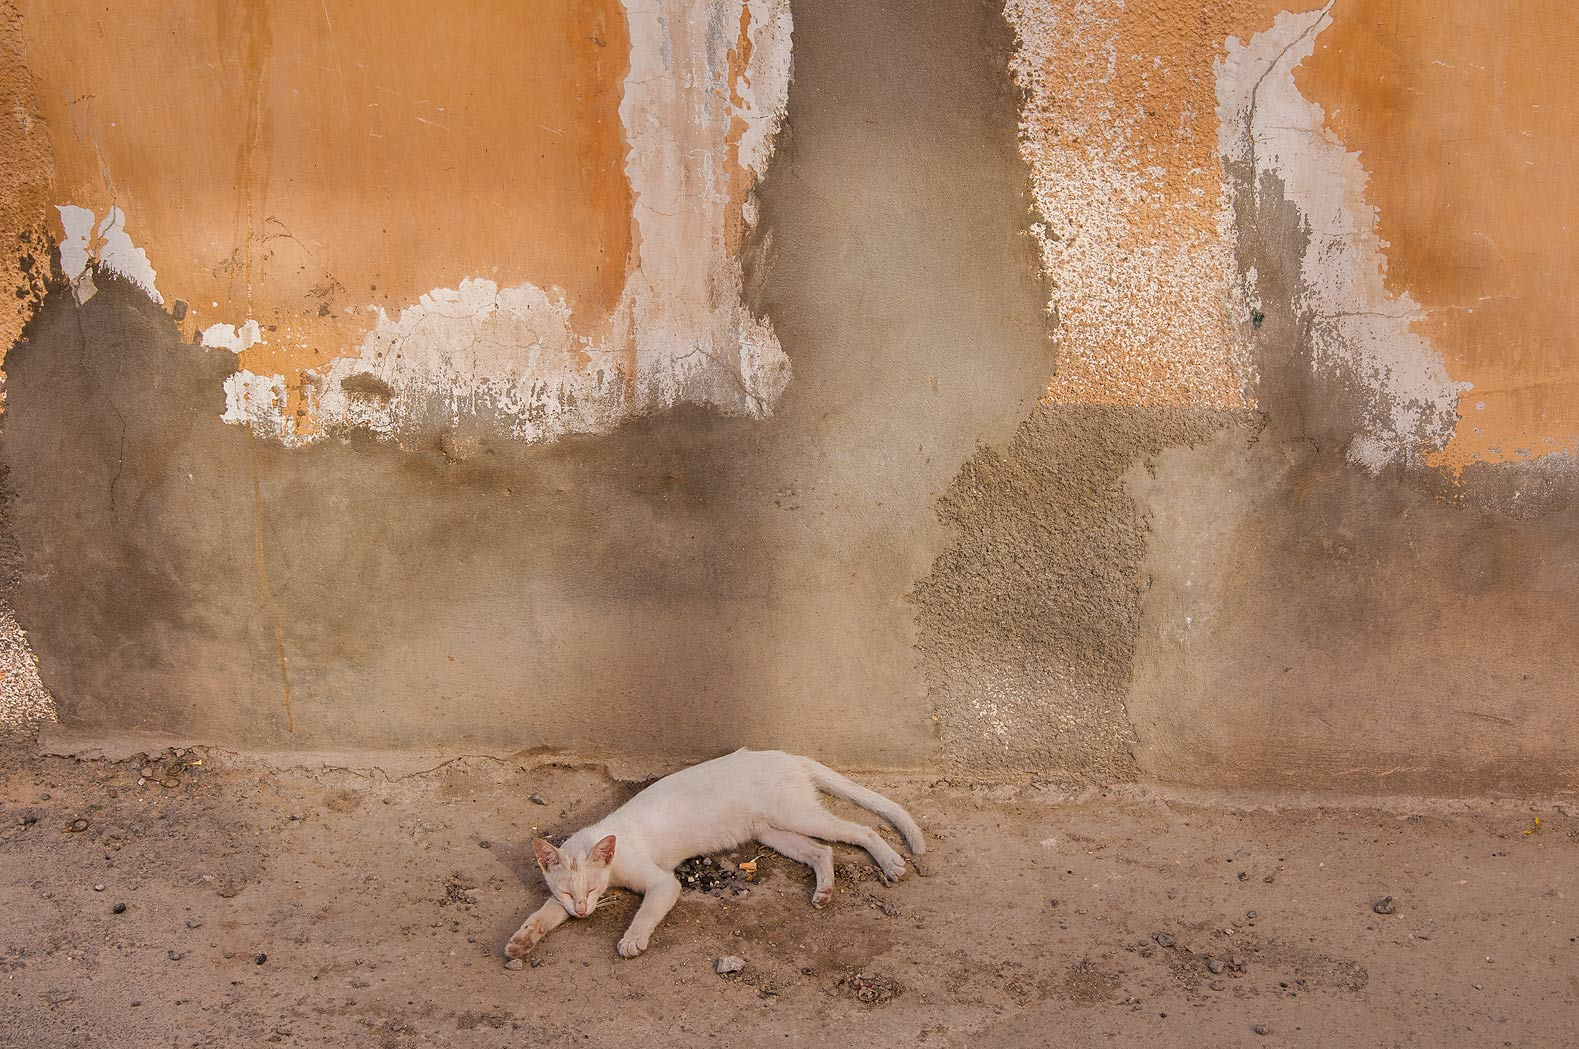 White cat sleeping in sikka (alley) at Sikkat Ibn...Dawakhil St., Najma area. Doha, Qatar